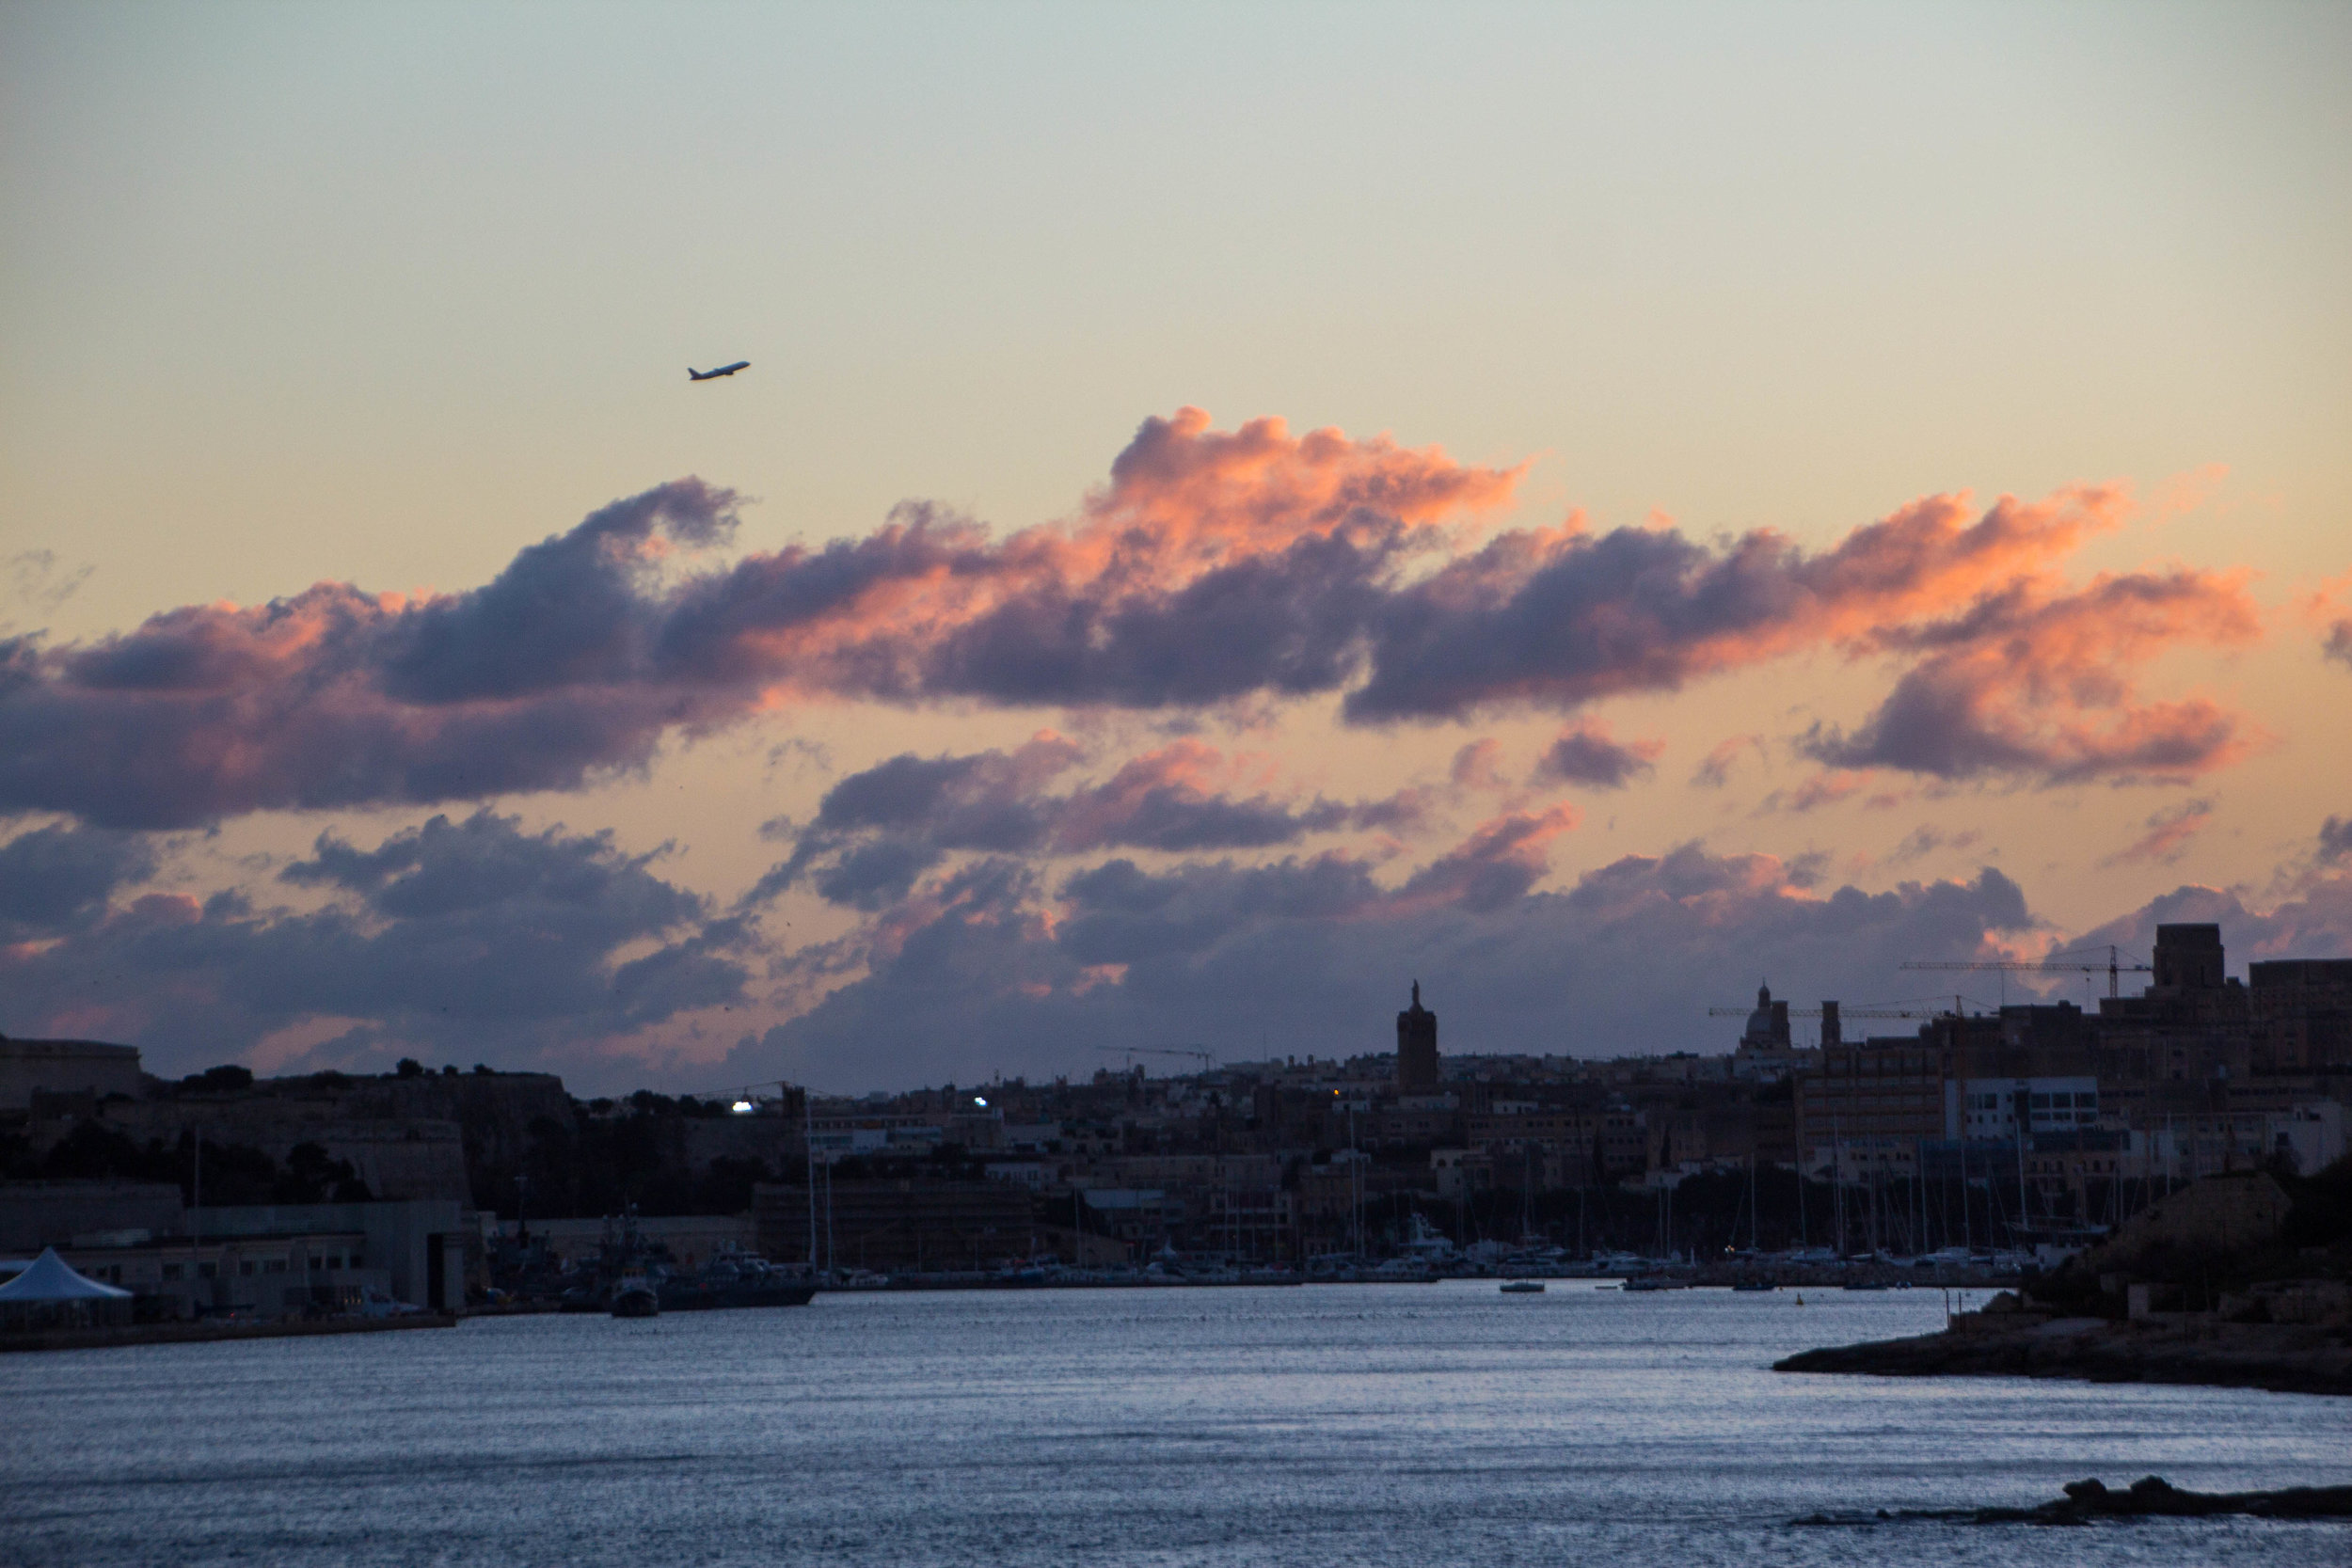 valletta-sliema-sunset-photography-36.jpg